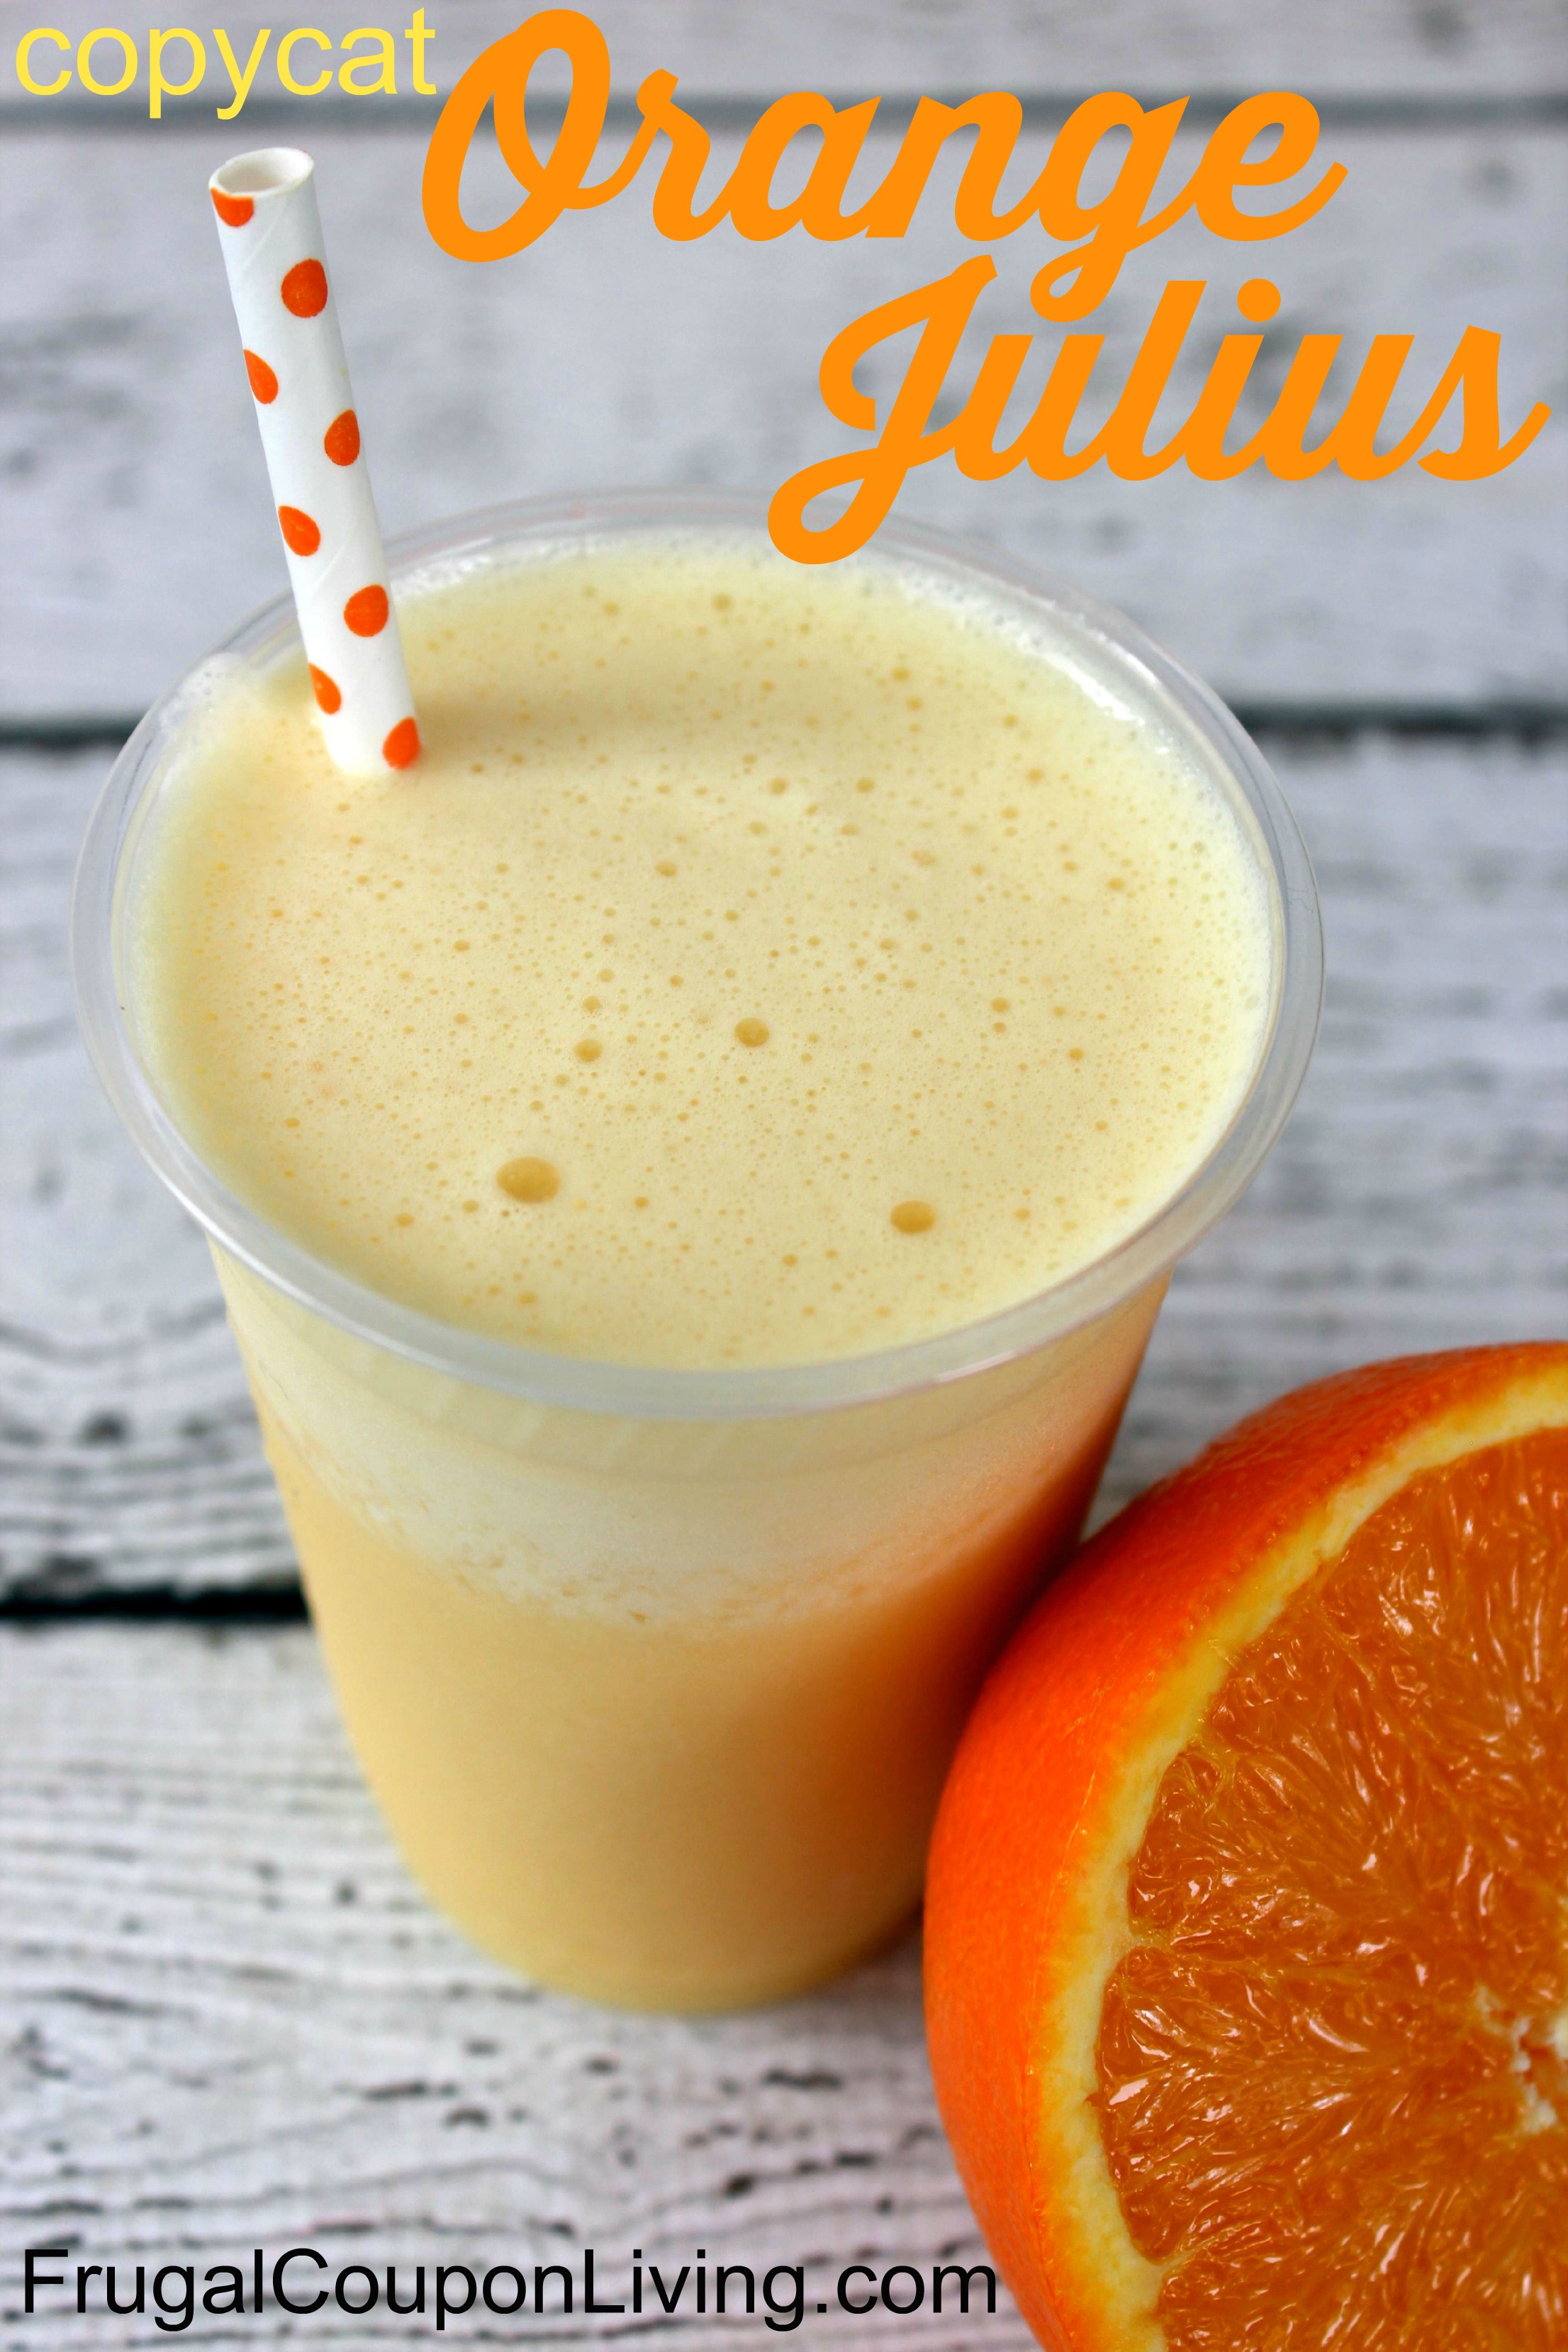 copycat-orange-julius-recipe-frugal-coupon-living